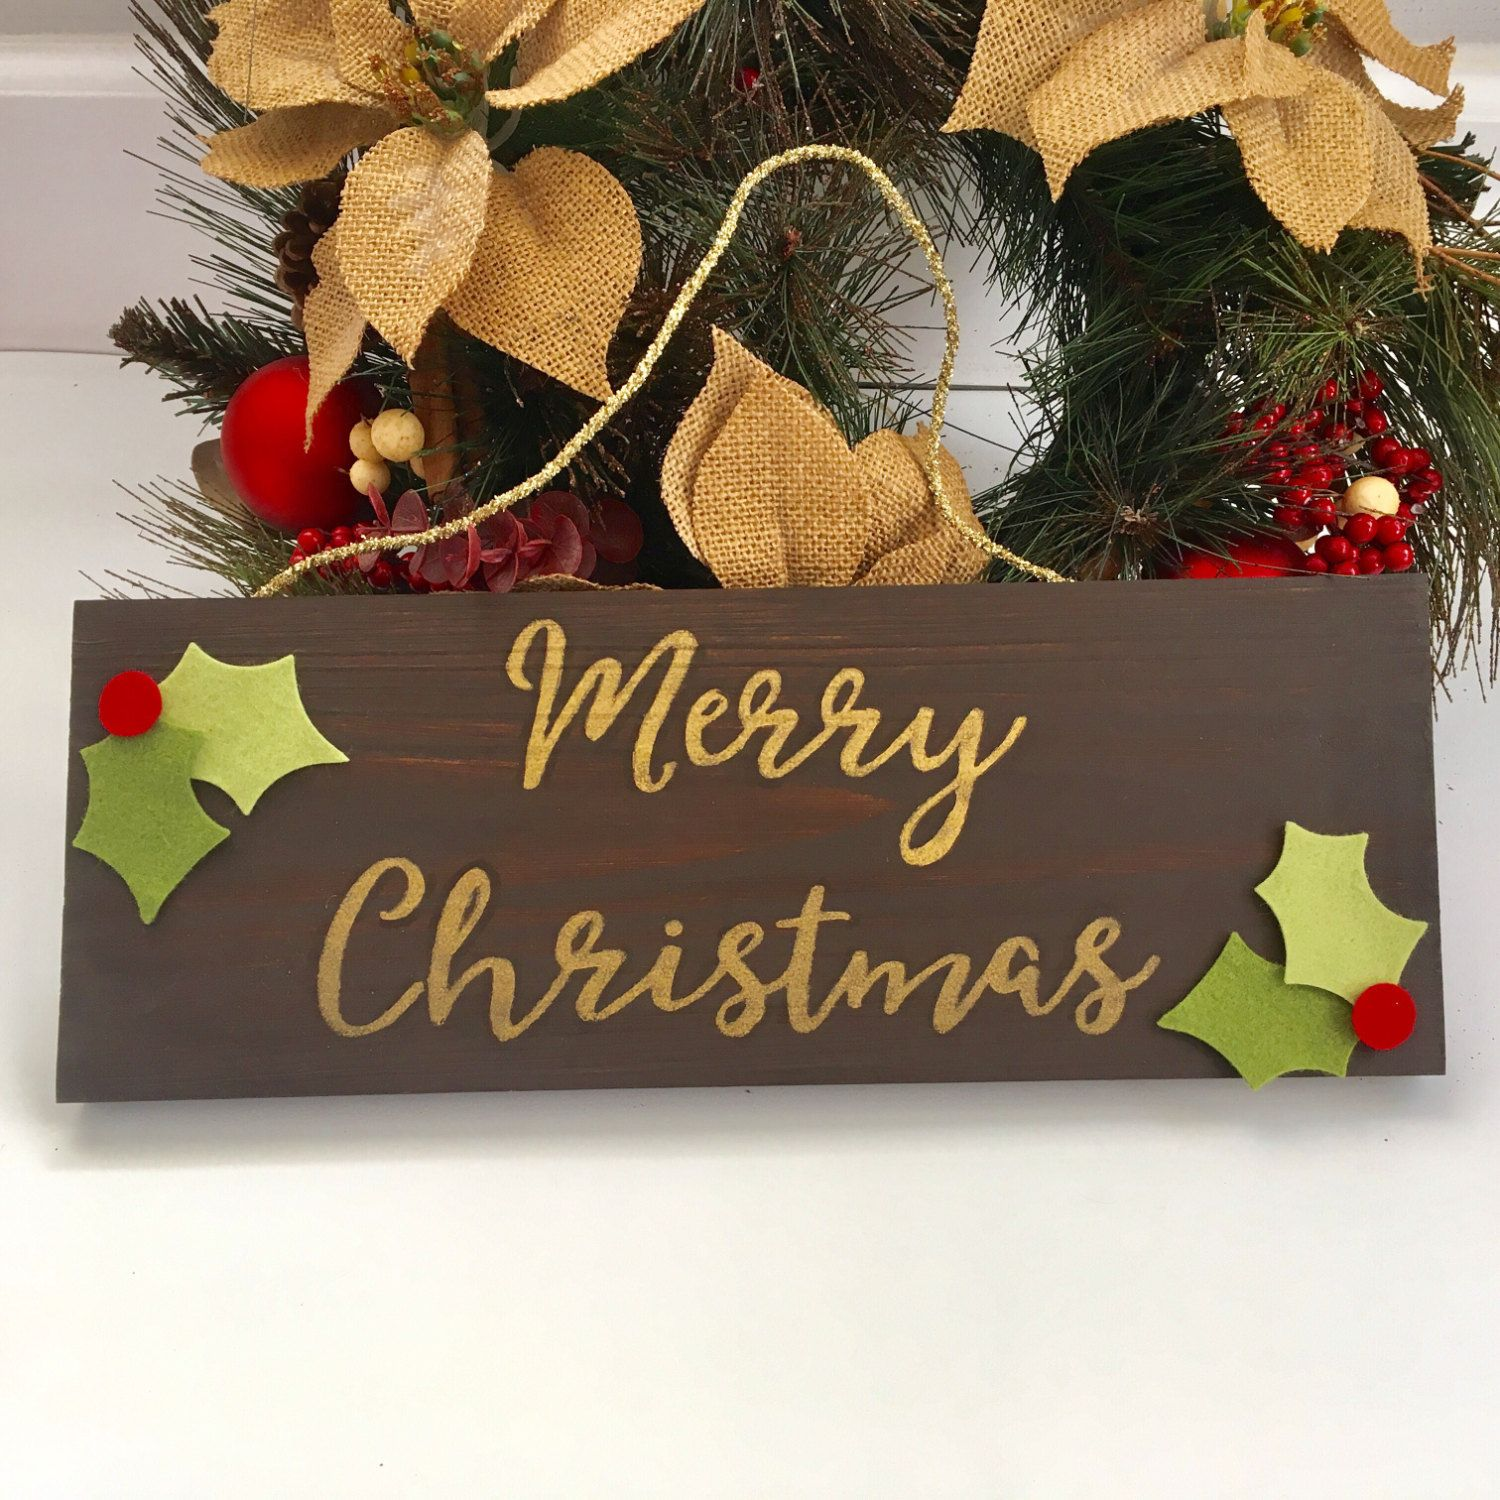 Merry Christmas Wooden Sign Farmhouse Cottage Christmas Wall Decor